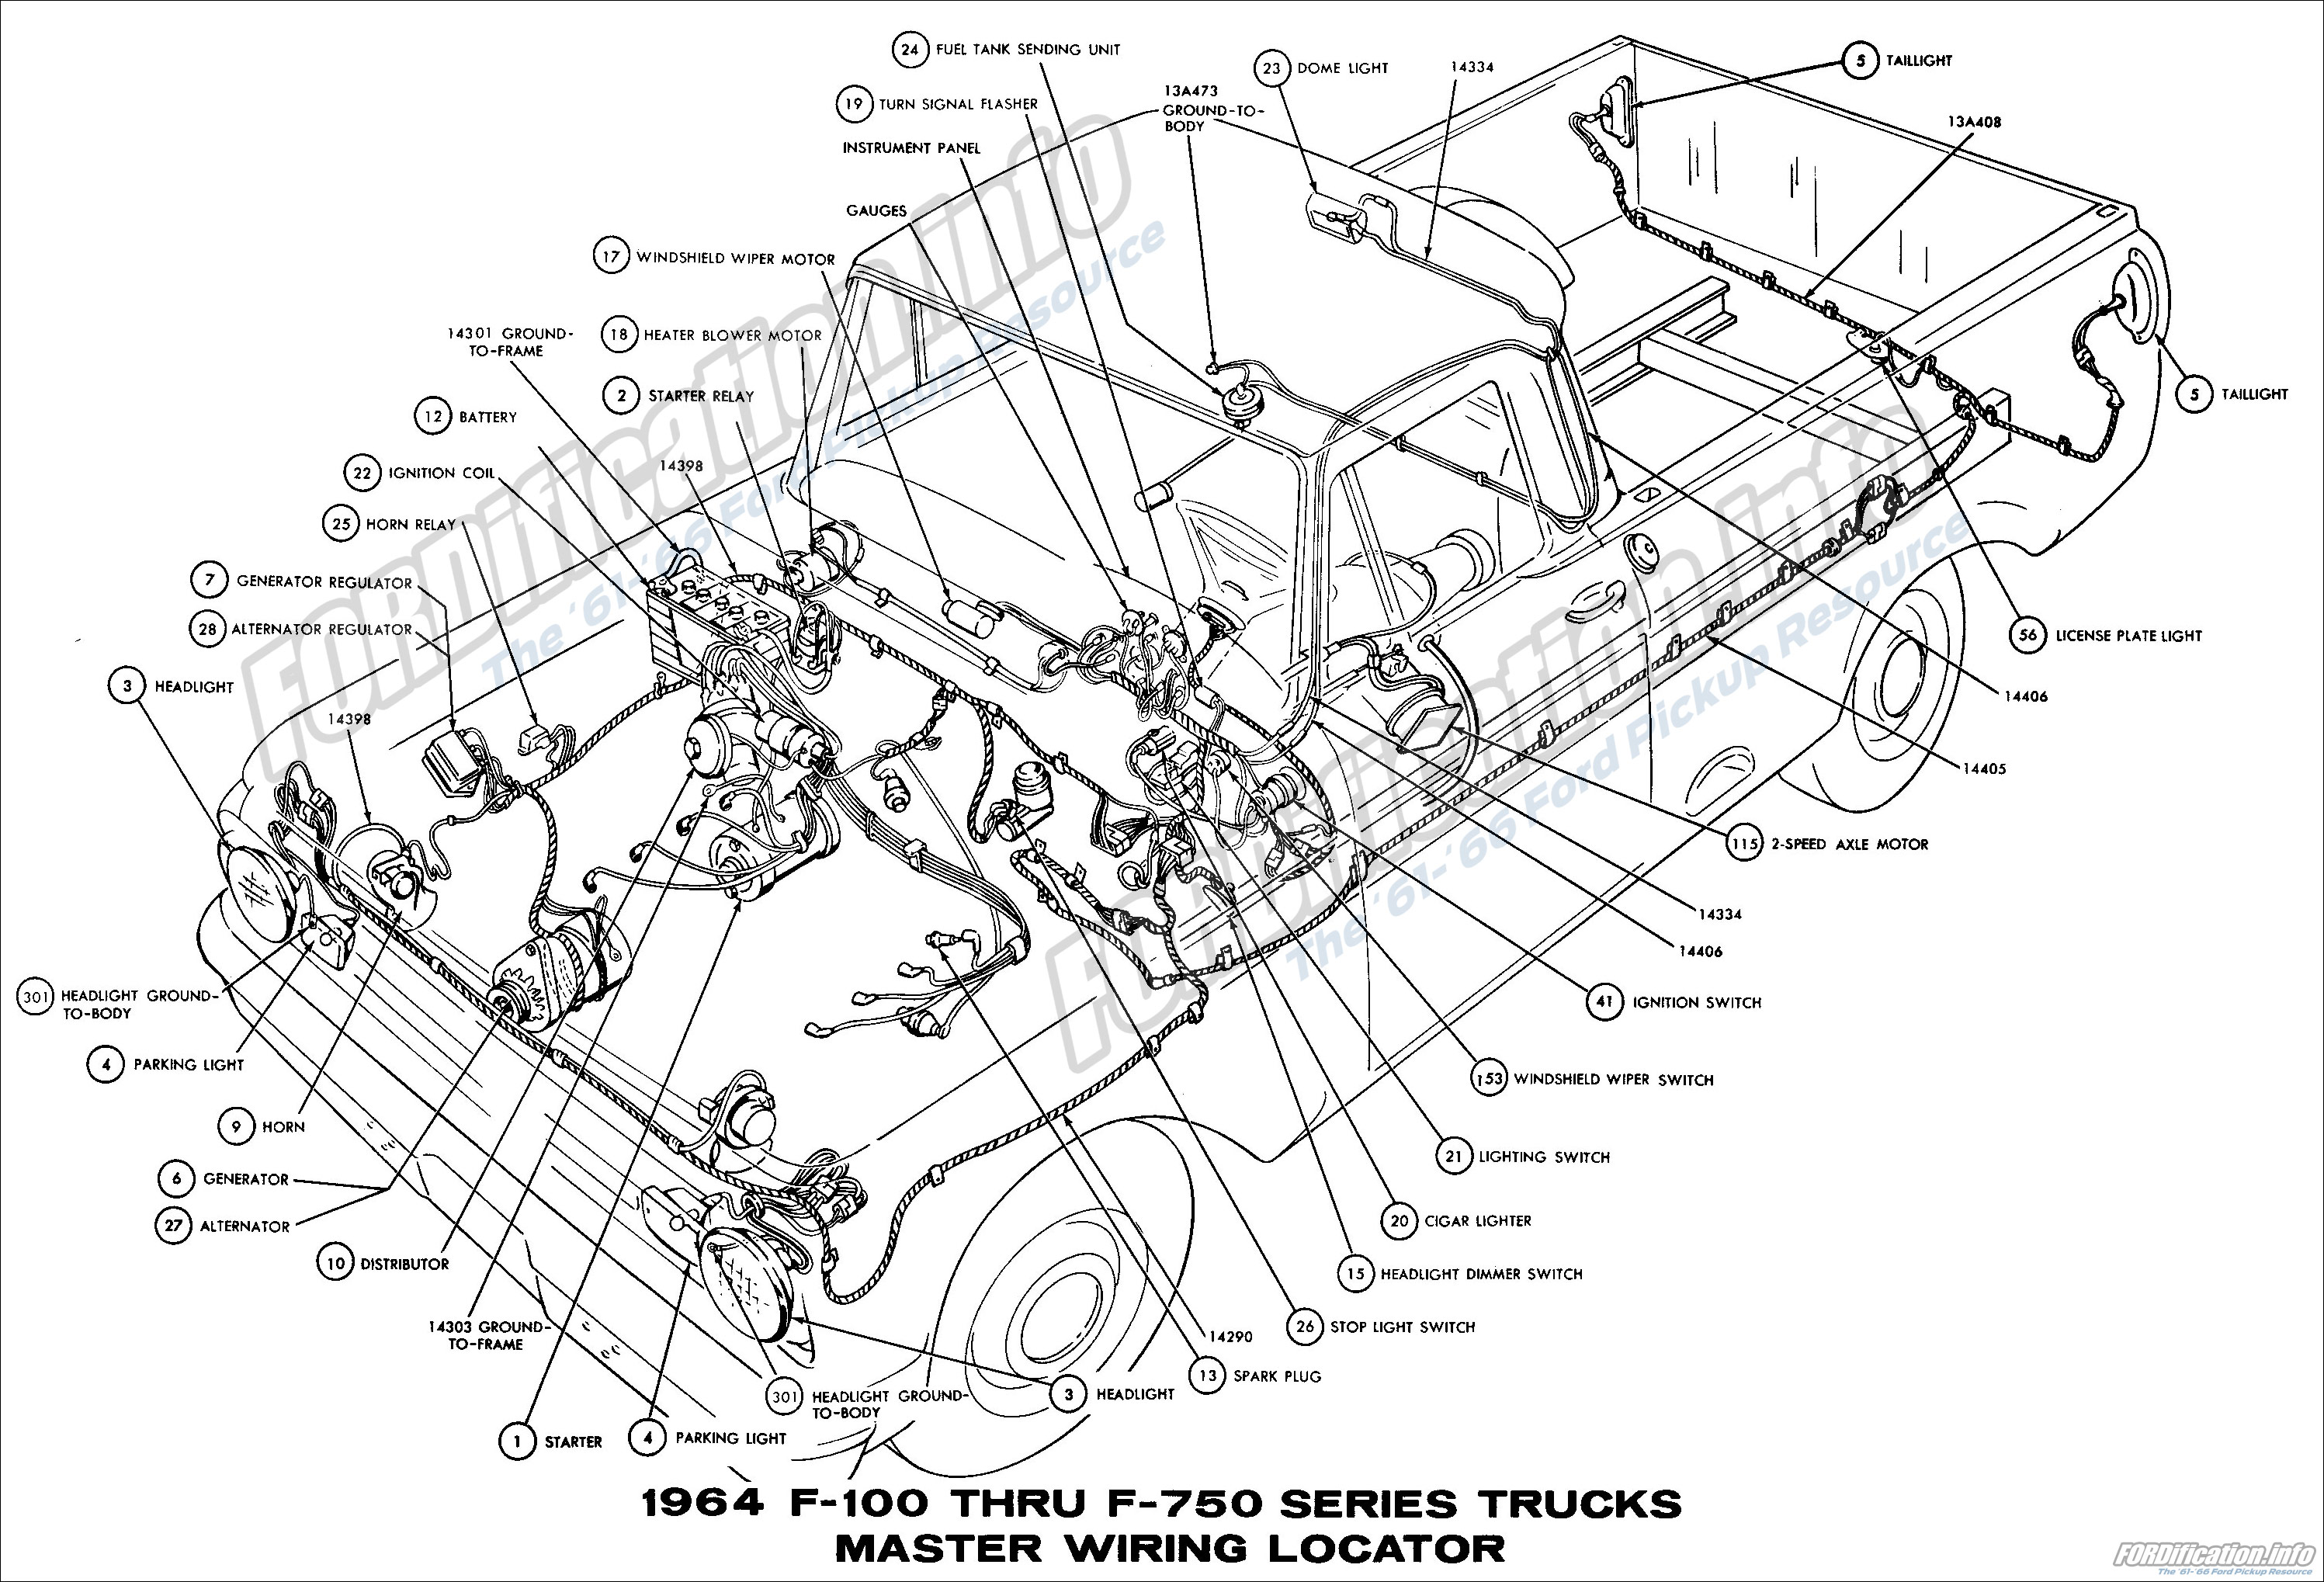 1964 Ford Truck Wiring Diagram Bots Radio Diagrams Fordification Info The 61 66 1977